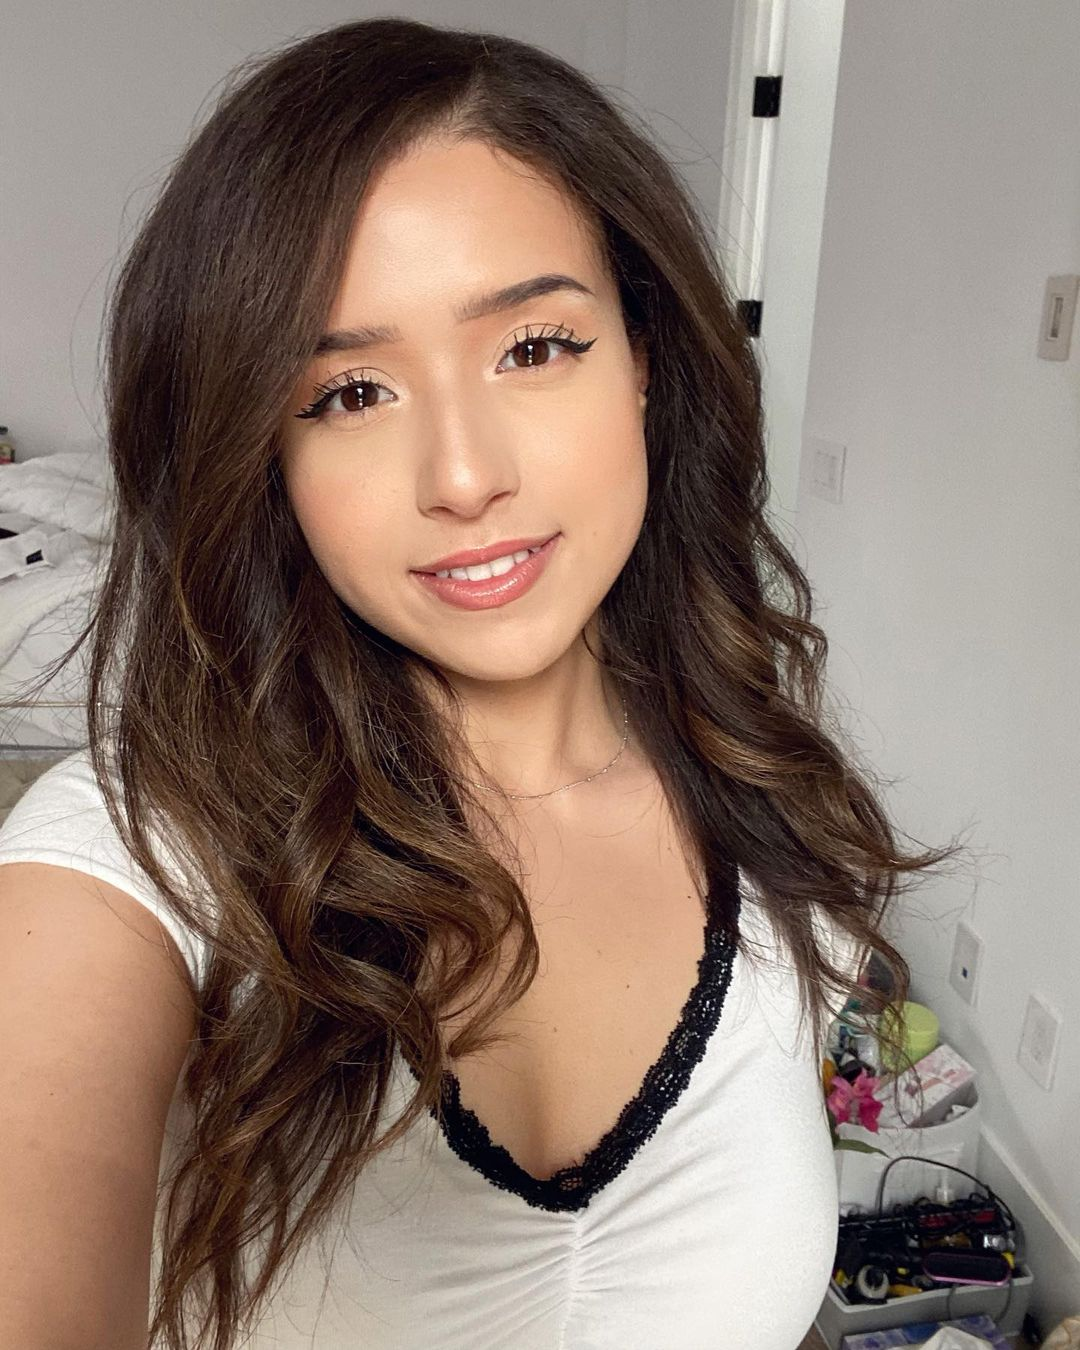 Sexy cute and hot photos from Pokimane Twitch streamers 22 6